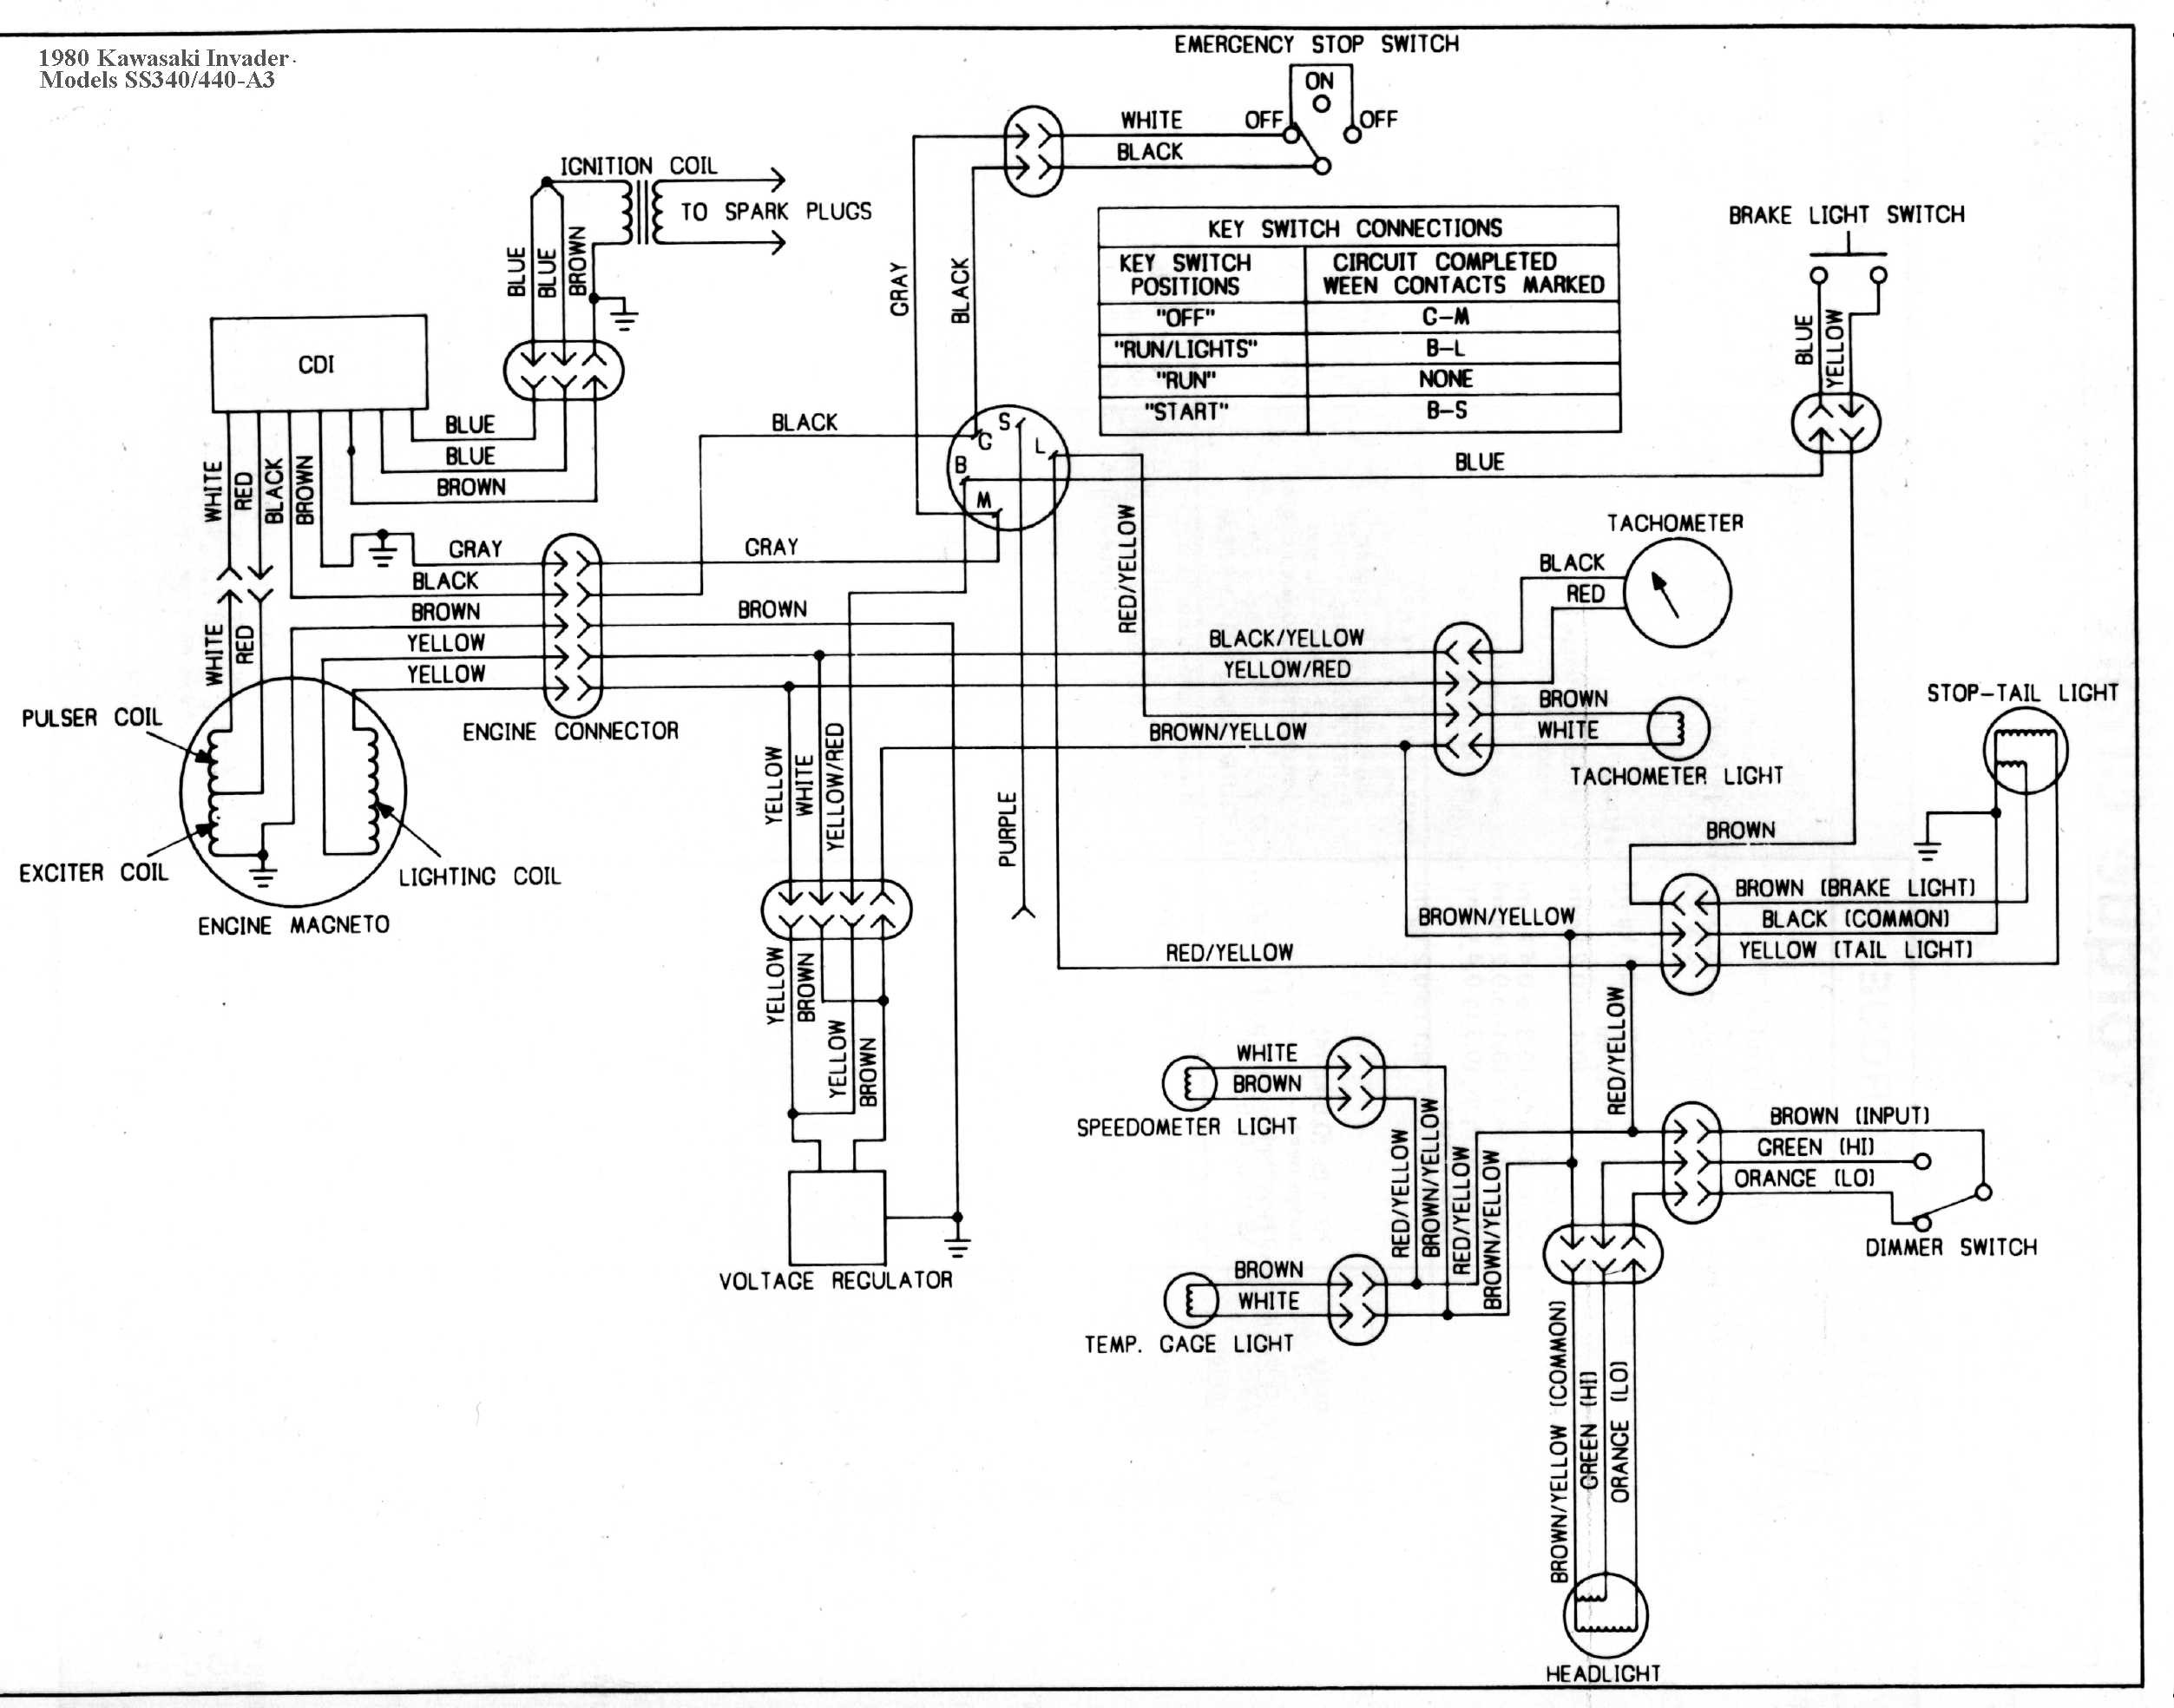 A Wiring Diagram Kawasaki on